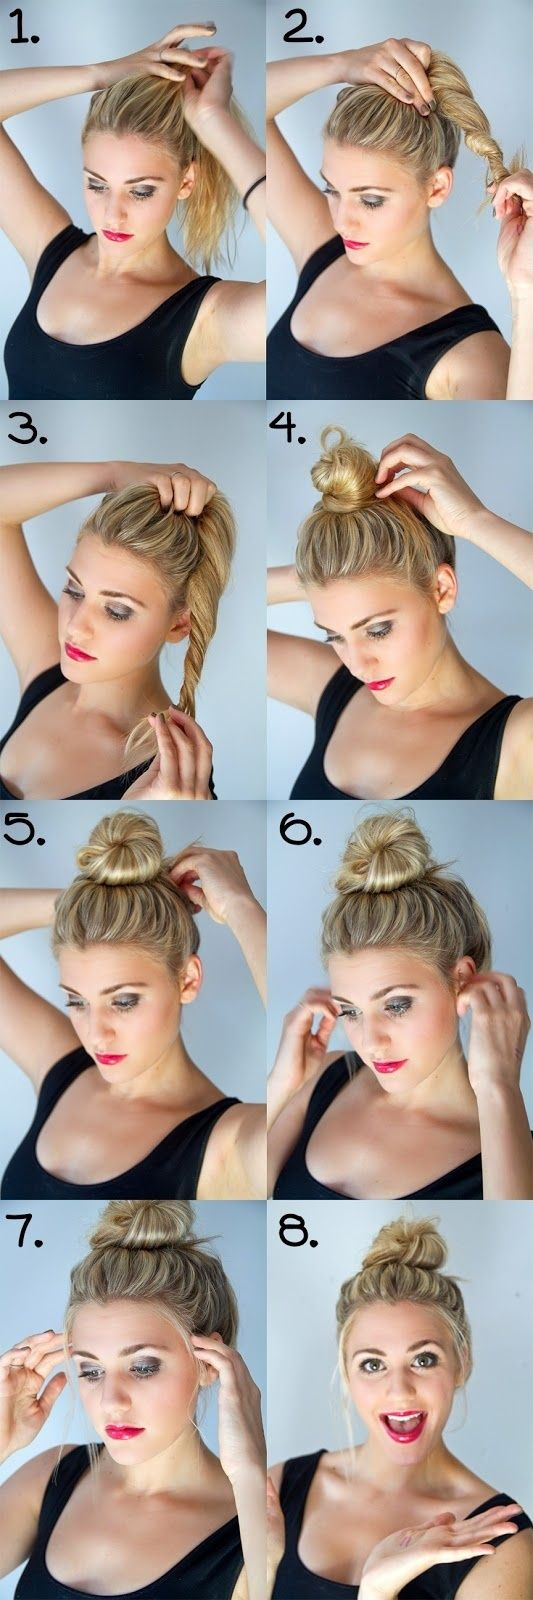 5 Gorgeous Beach Hairstyles to Rock This Summer | JexShop Blog http://www.jexshop.com/